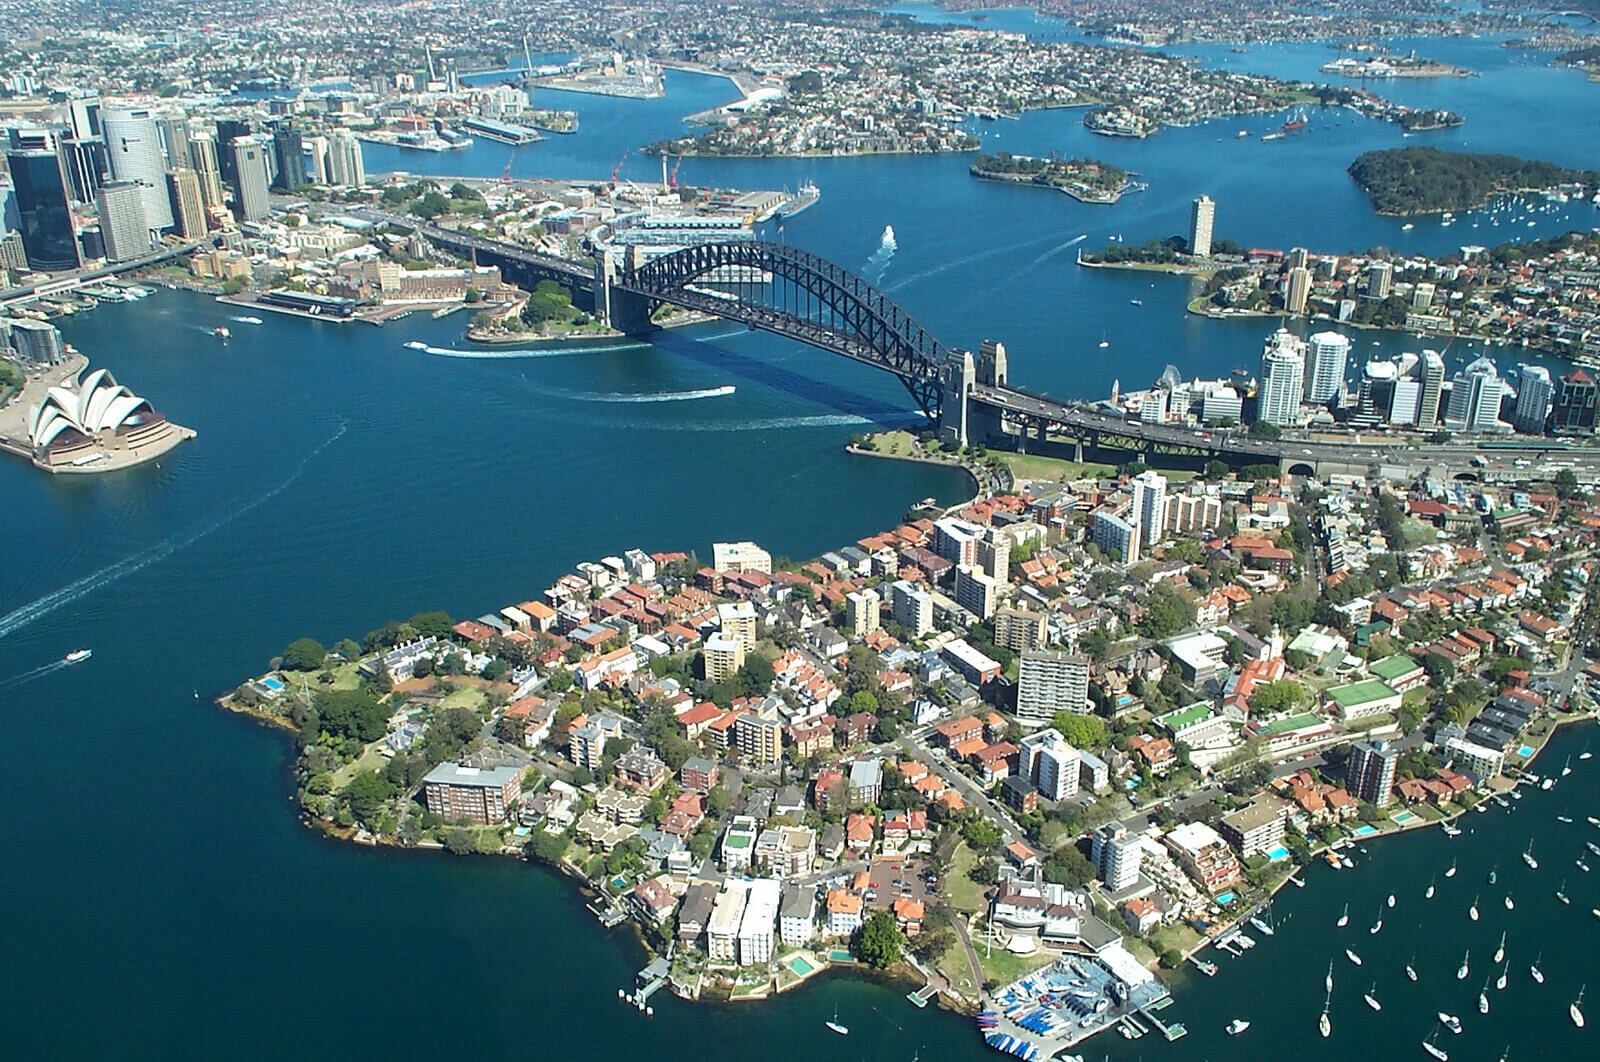 Aerial view of Sydney Harbour in Australia